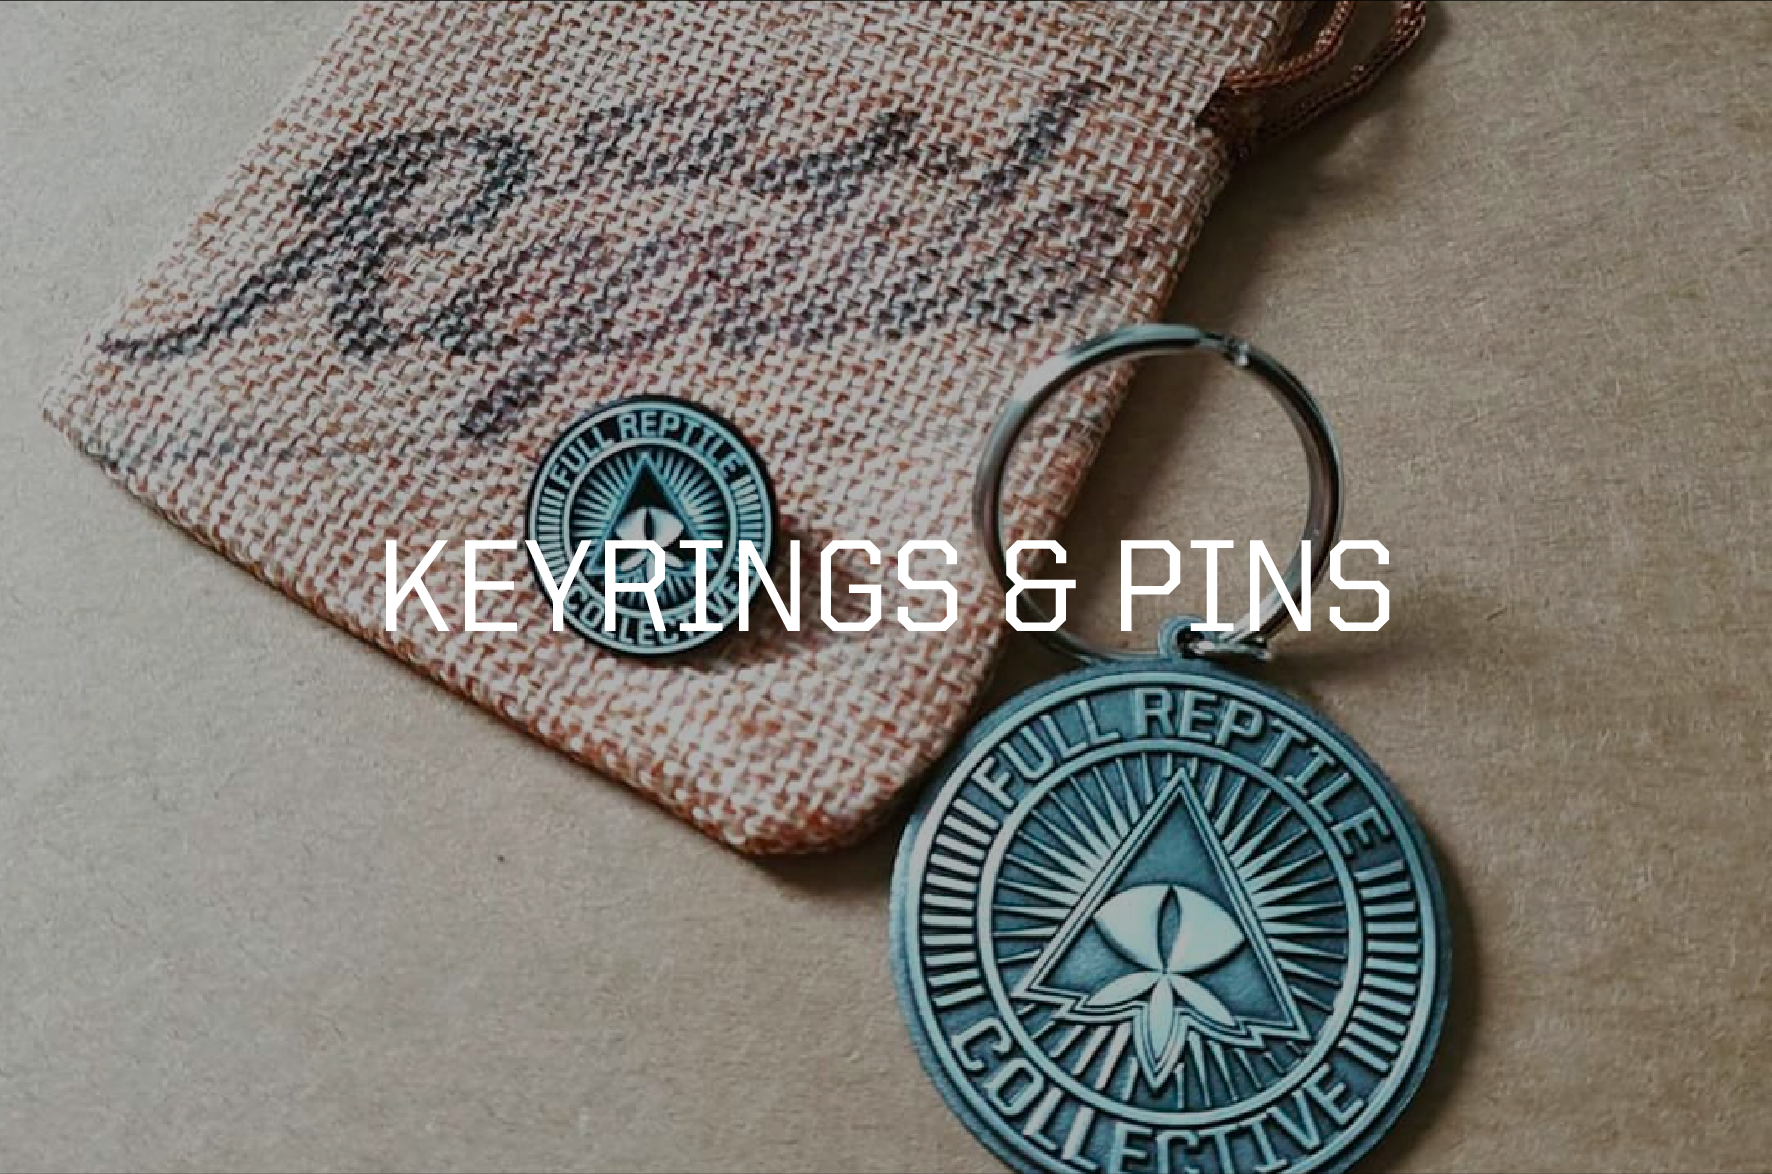 KEYRINGS & PINS